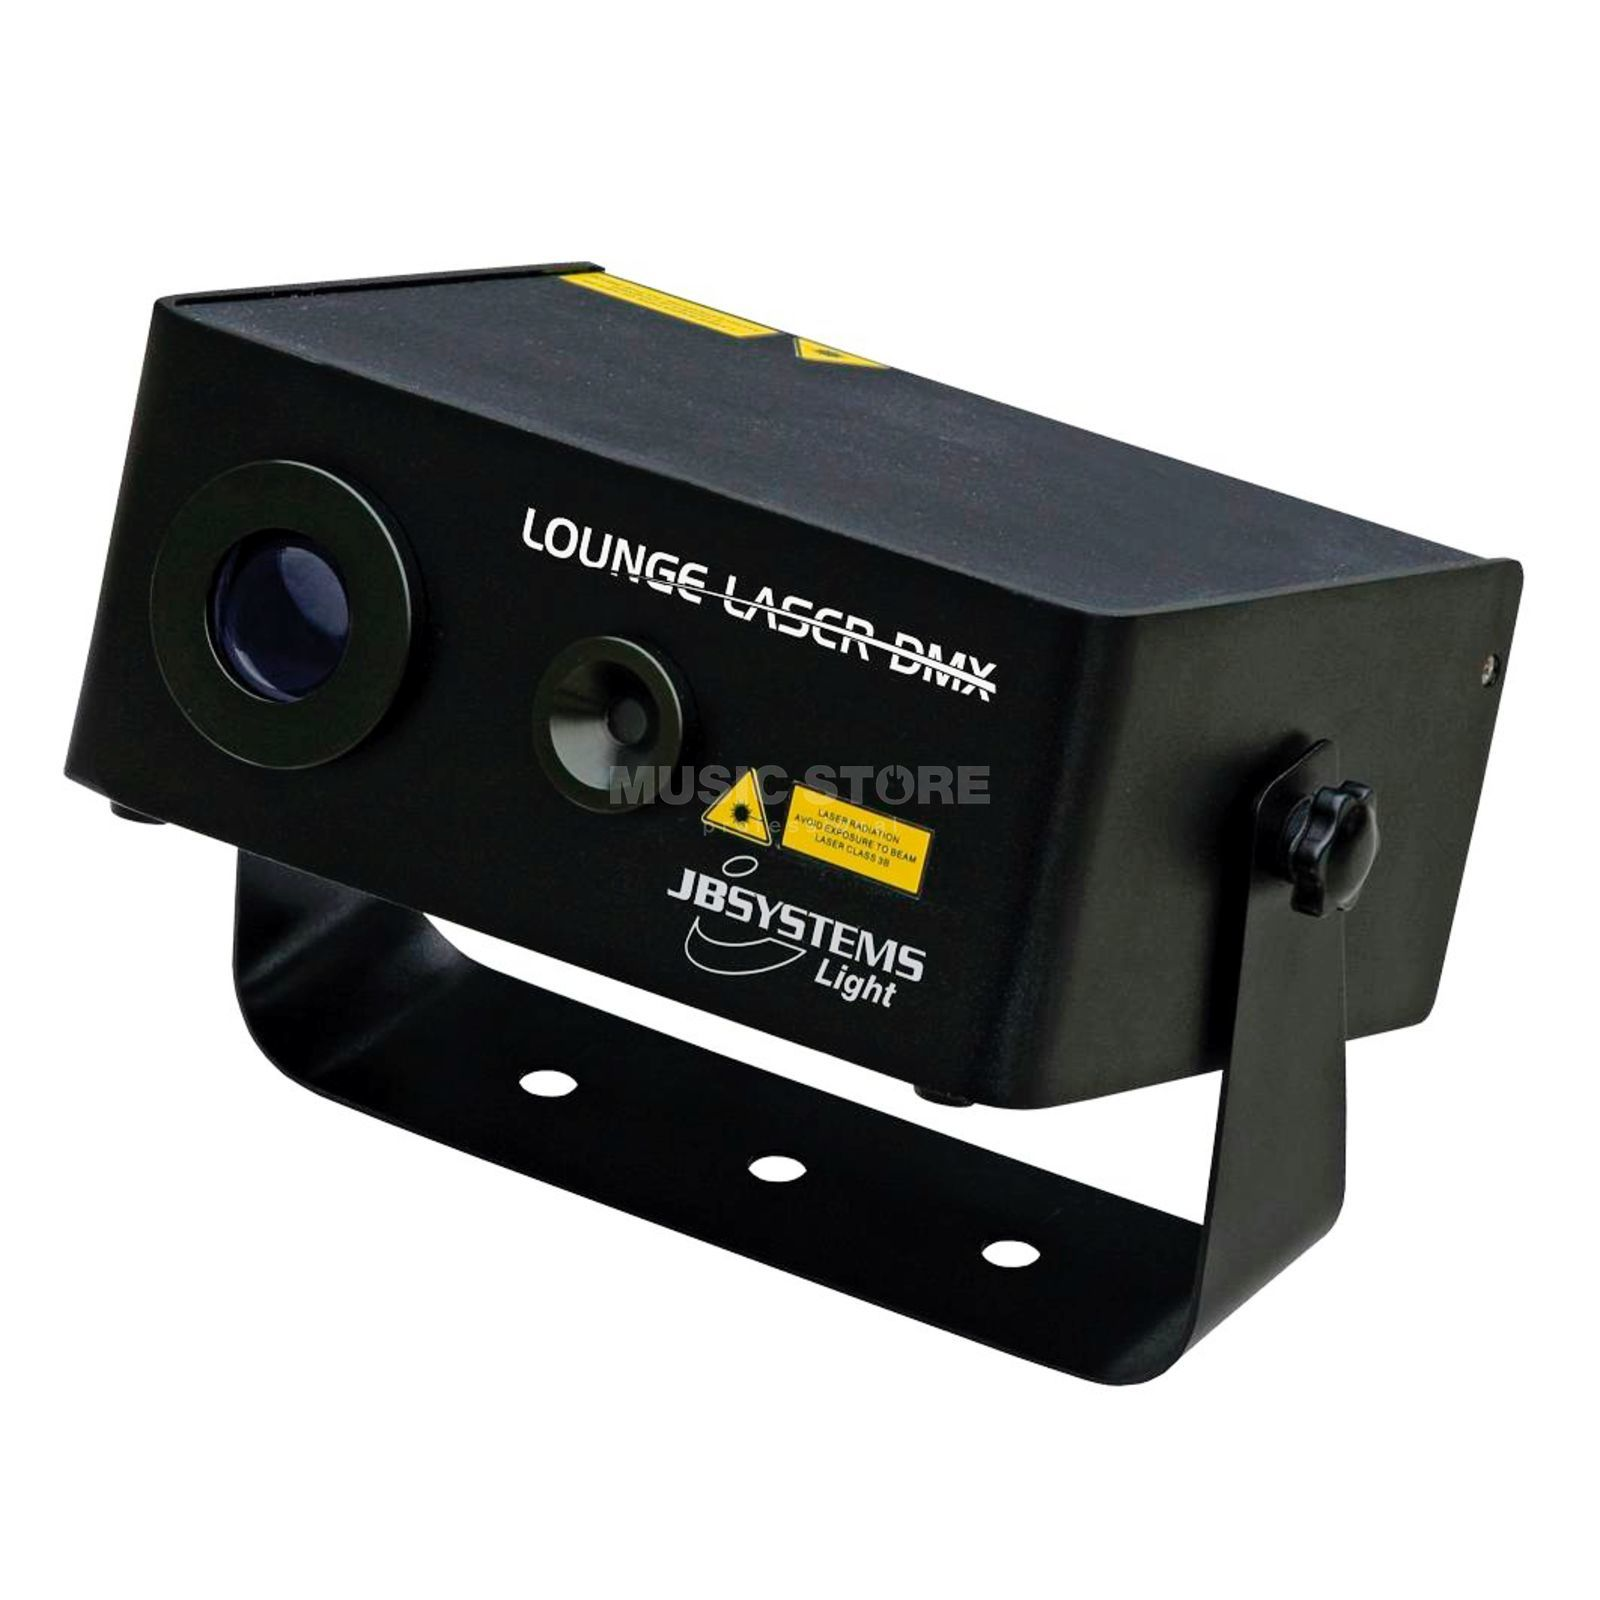 JB Systems Lounge Laser DMX with Water Wave LED Effekt Produktbillede